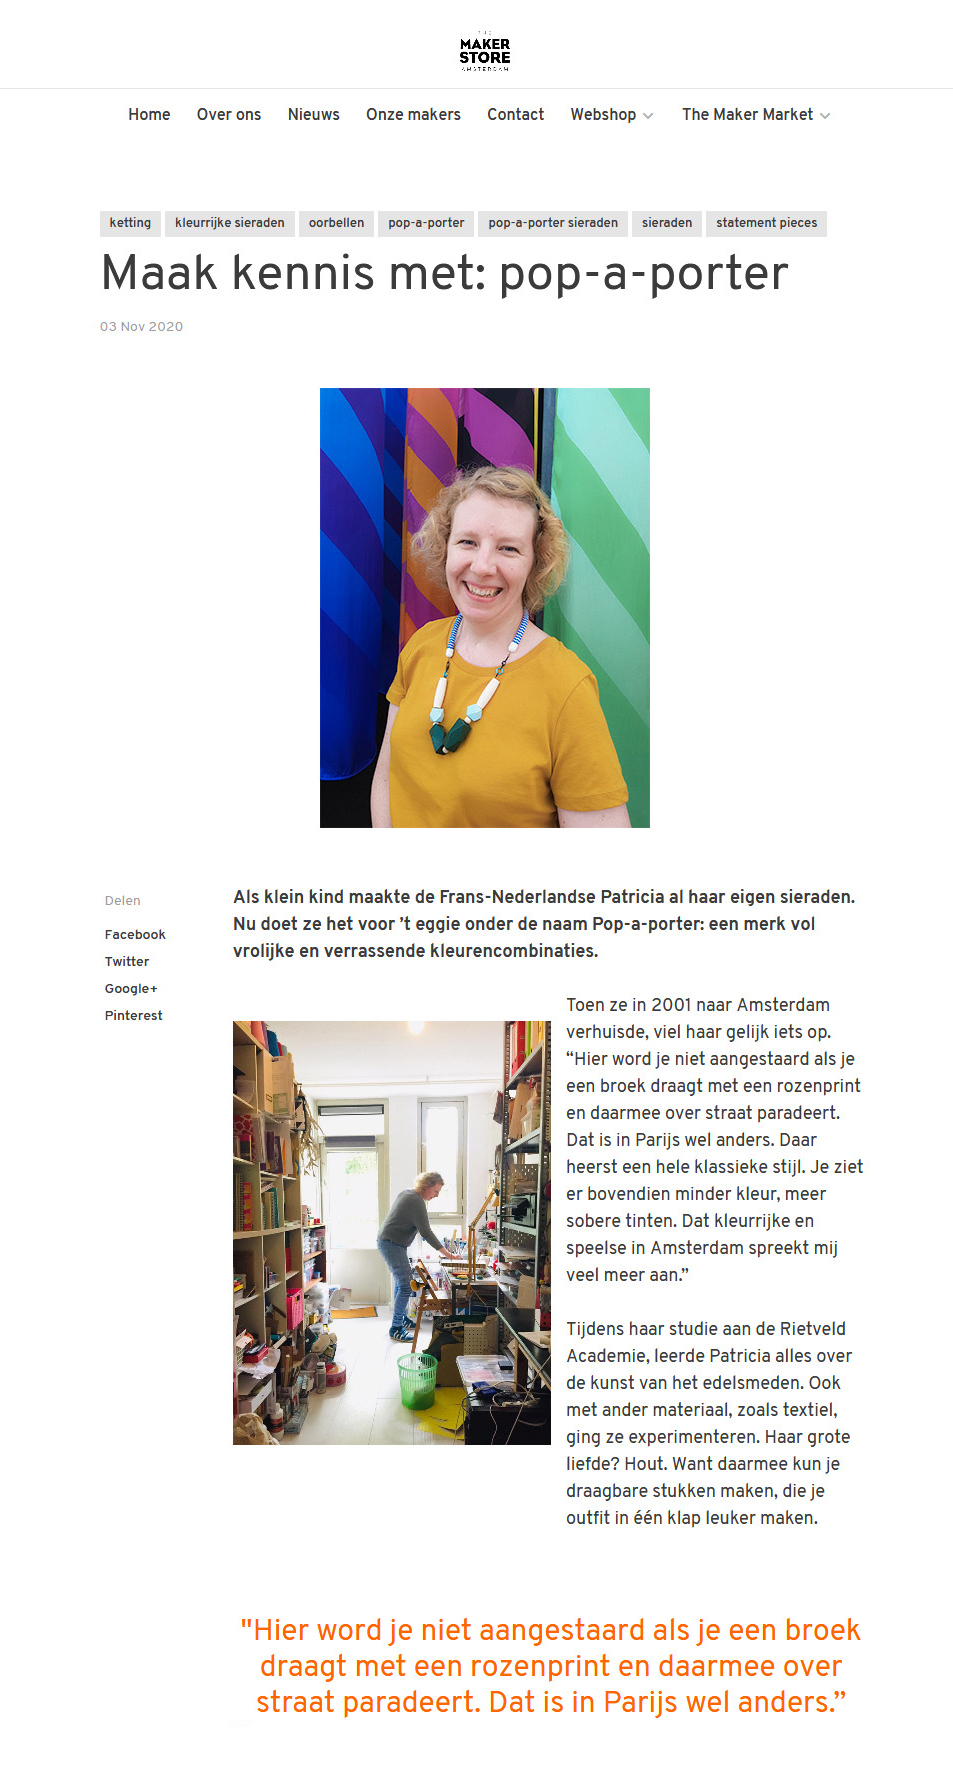 interview the maker store of pop-a-porter